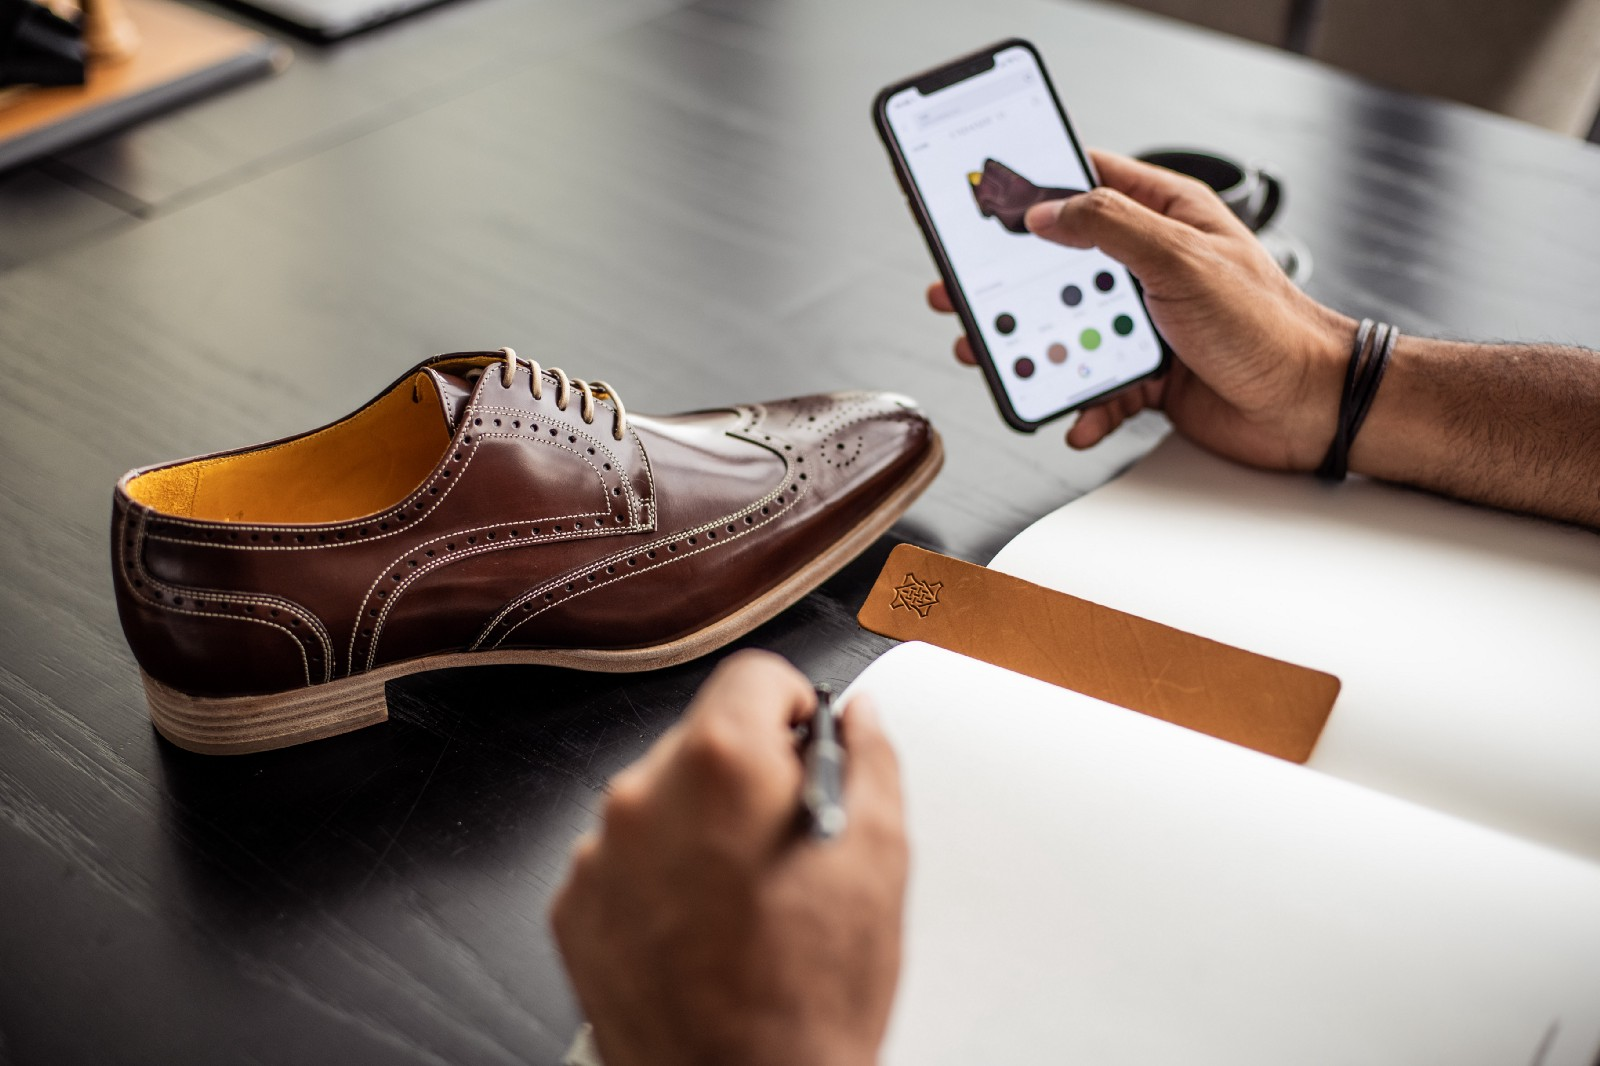 c6778932d8 The customers' bespoke shoe journey begins with three choices: shoes, boots  or sneakers.